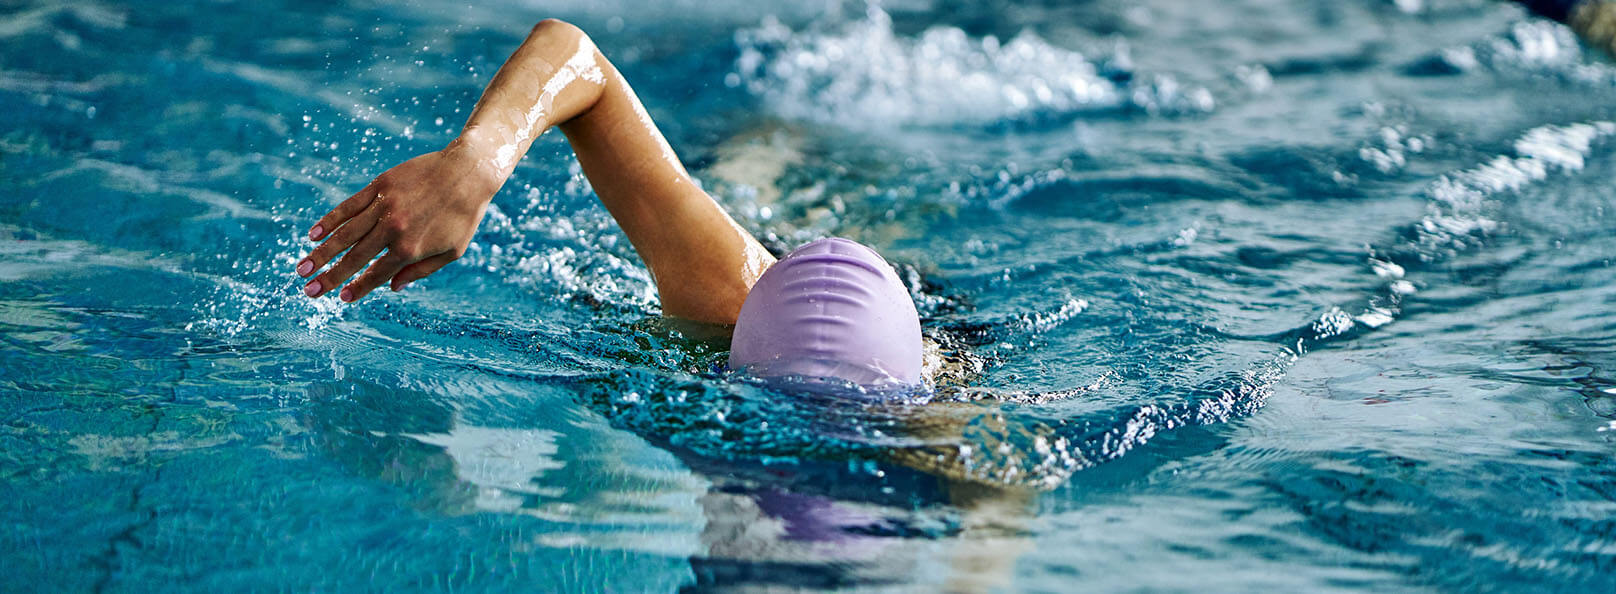 image-for-national-swimming-and-water-safety-framework